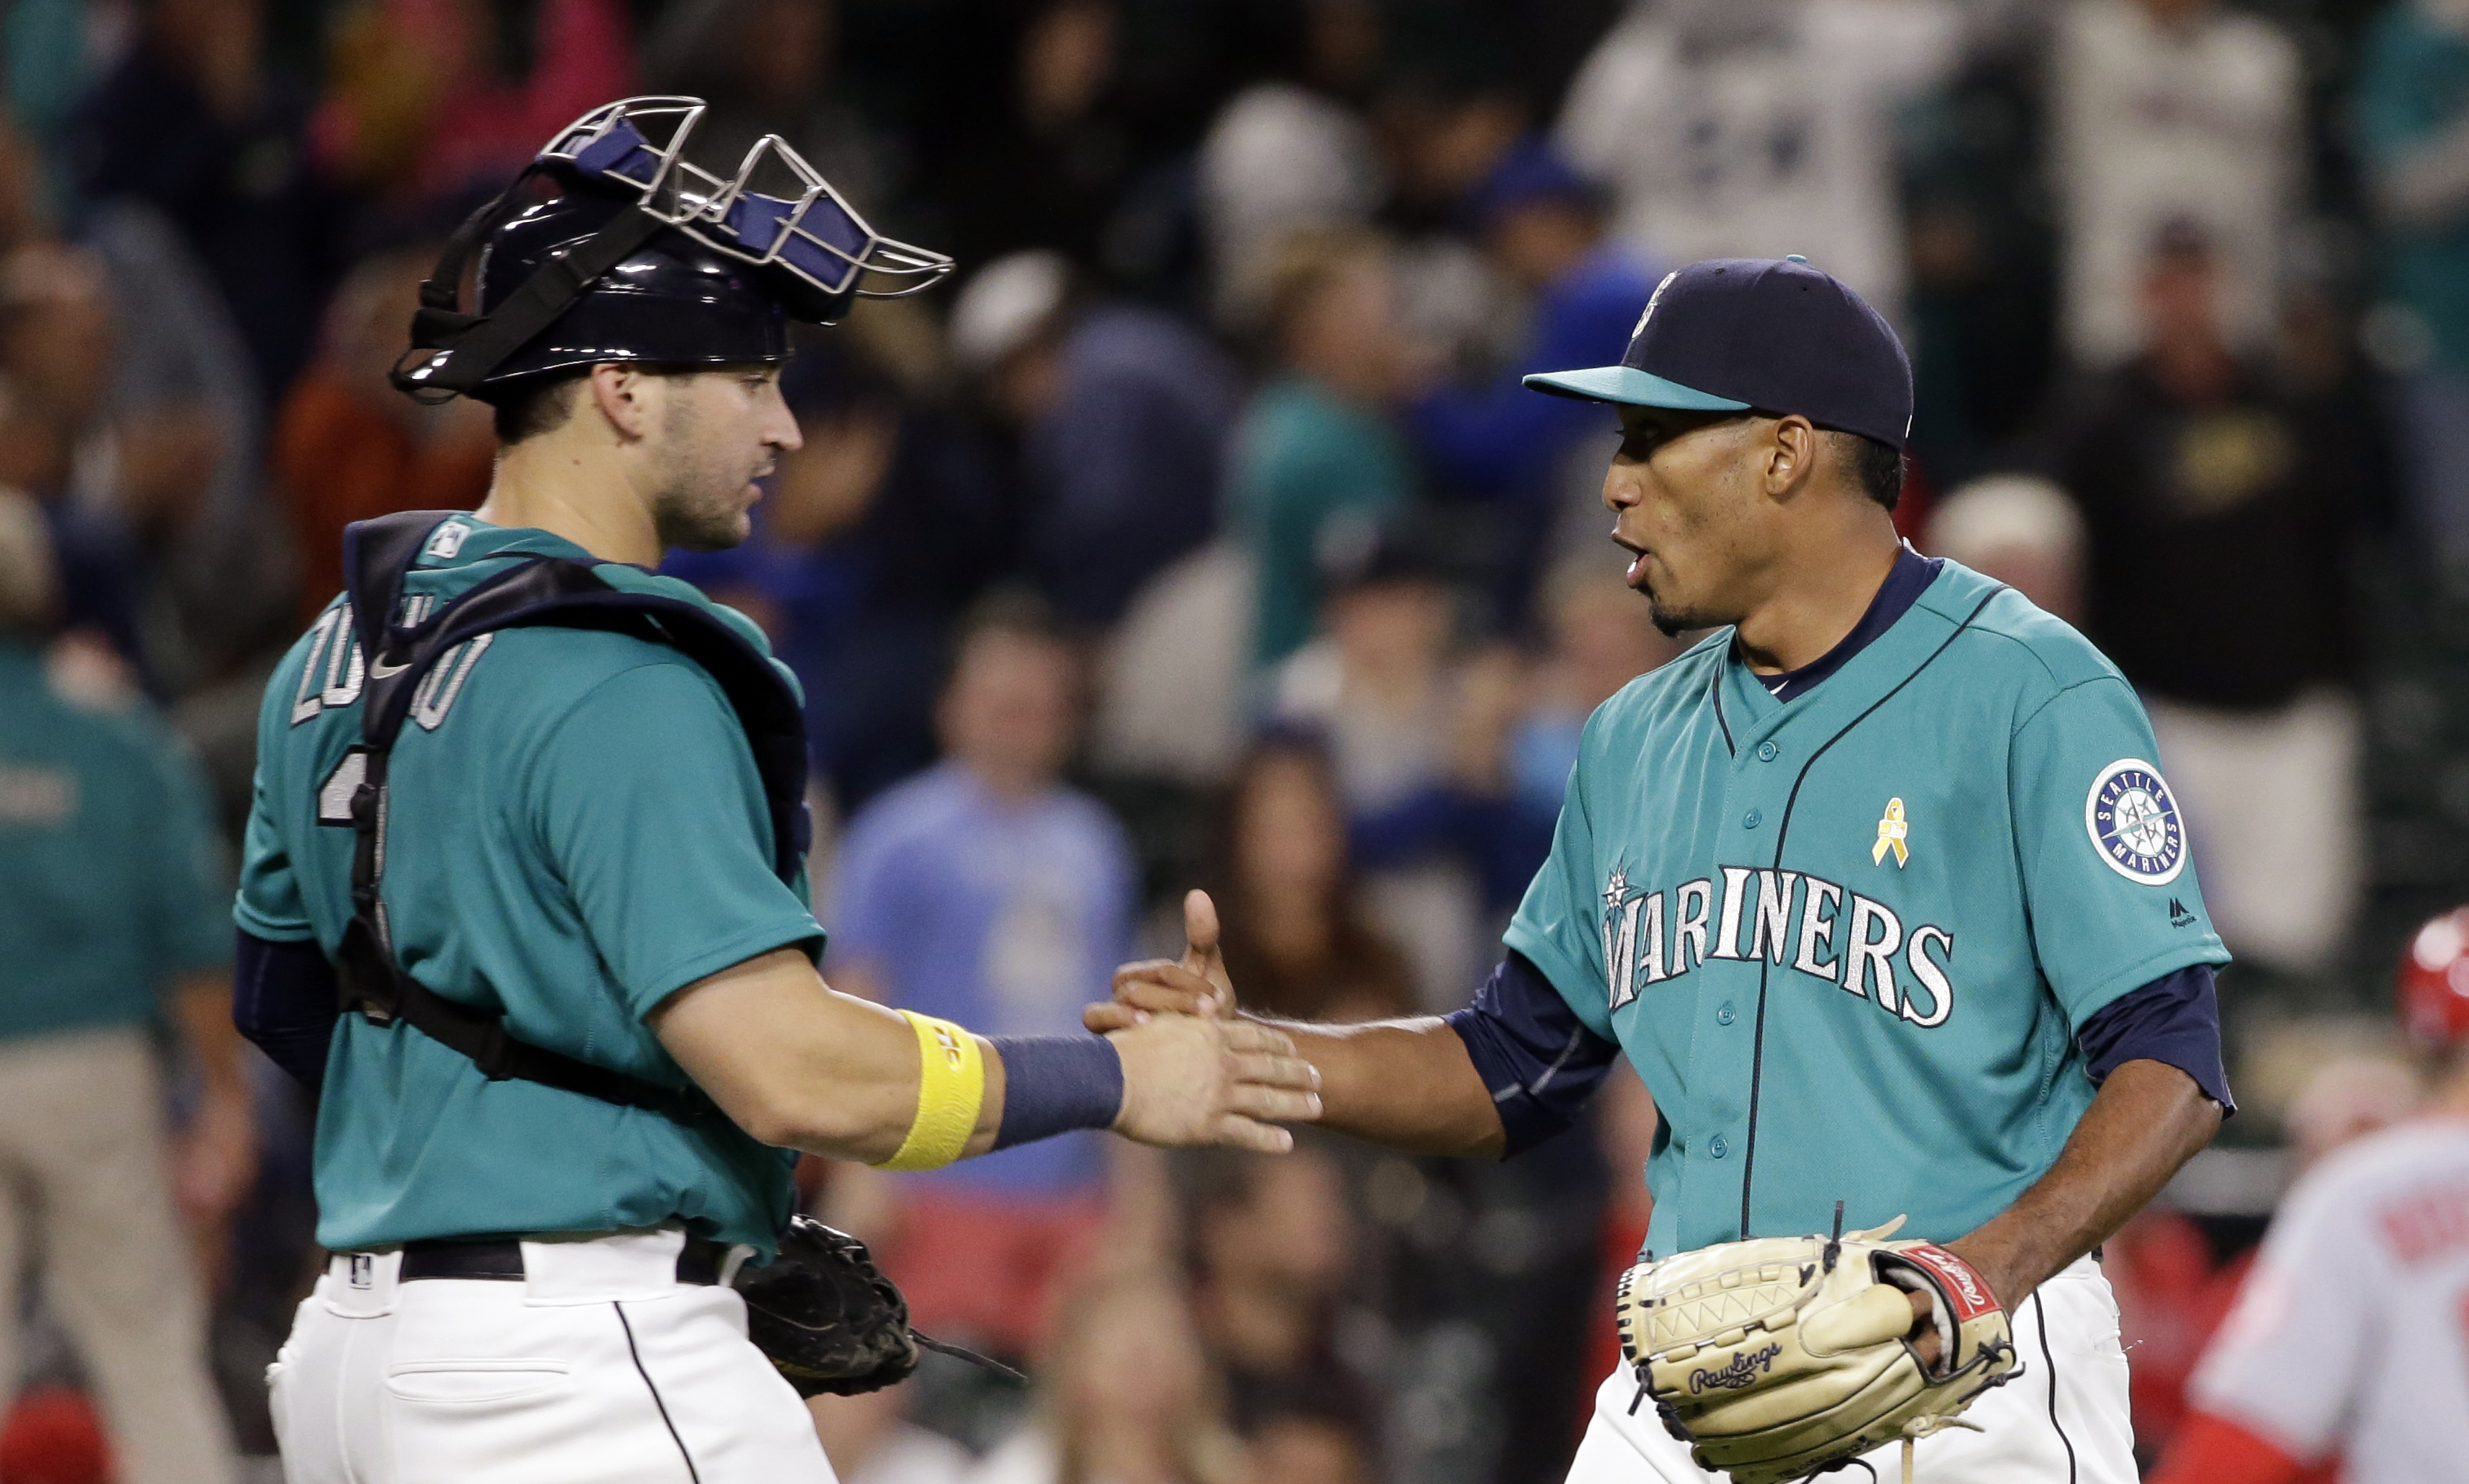 Seattle Mariners catcher Mike Zunino, left, shares congratulations with closing pitcher Edwin Diaz after the Mariners defeated the Los Angeles Angels 11-8 in a baseball game Friday, Sept. 2, 2016, in Seattle. (AP Photo/Elaine Thompson)